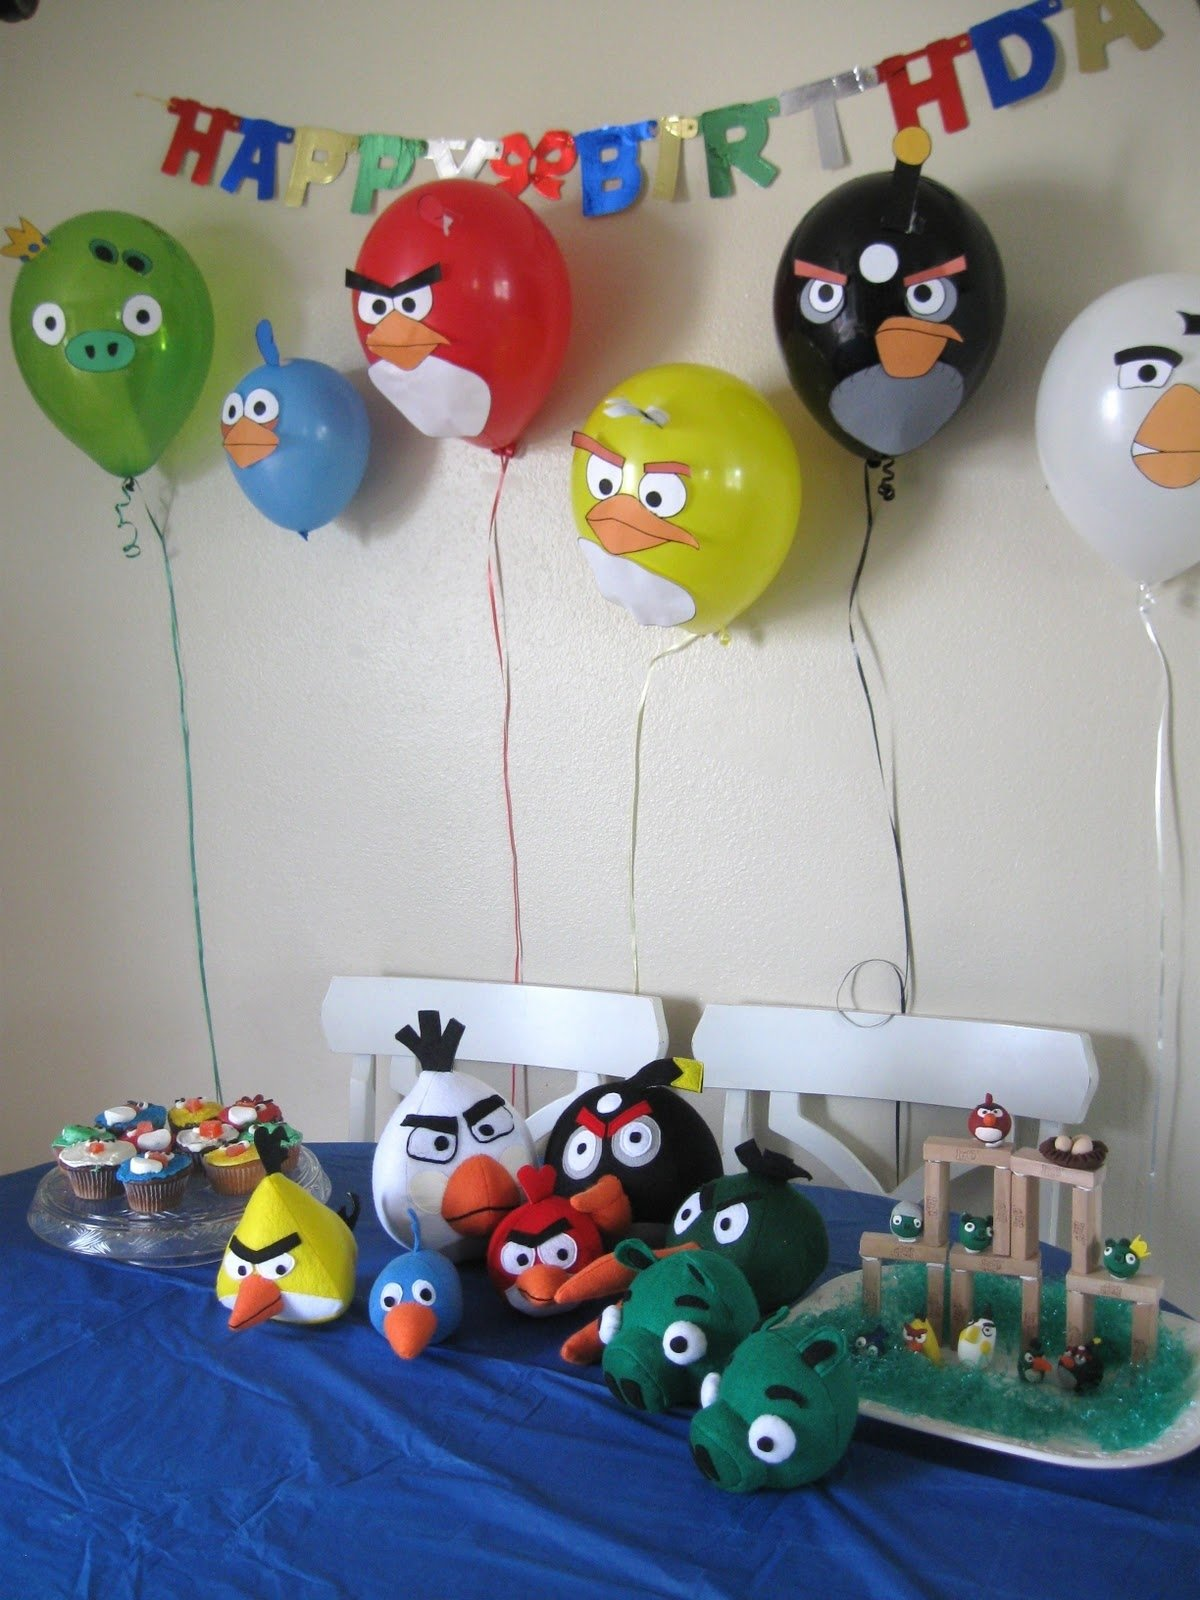 angry birds balloons jack's next birthday party idea? | ideas for